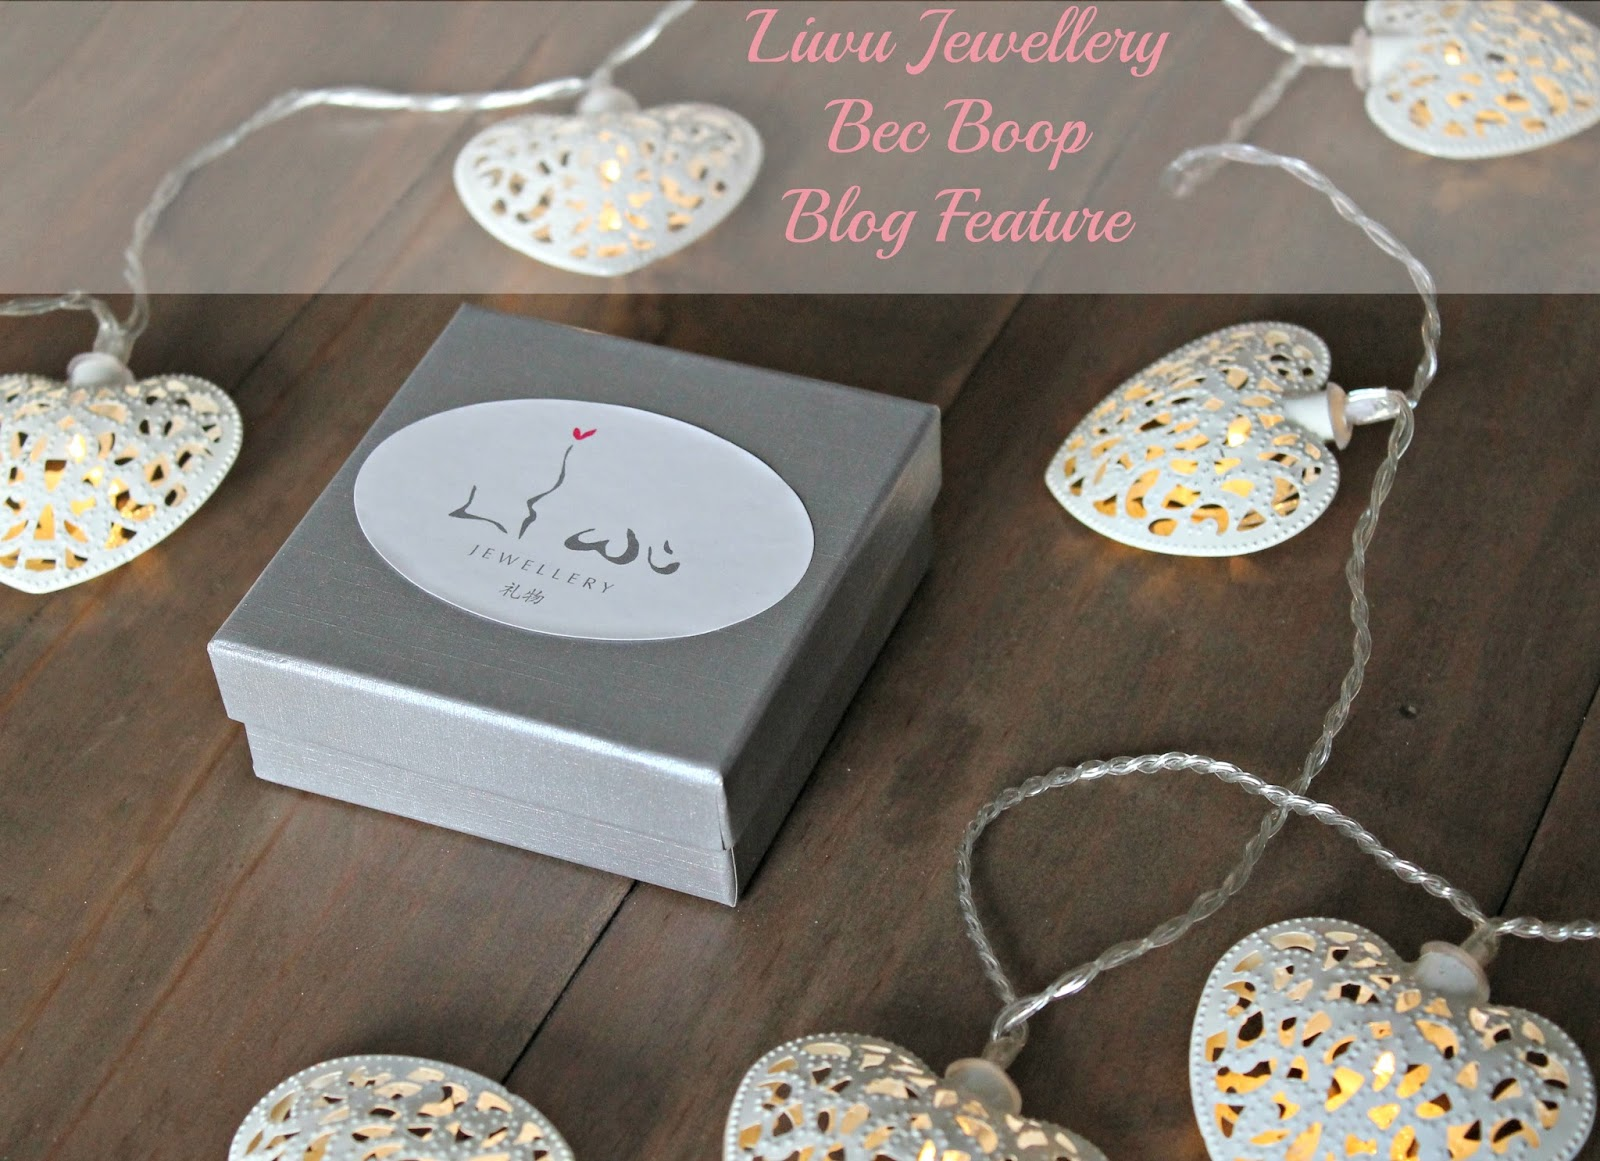 Liwu Jewellery Ireland Blog Review